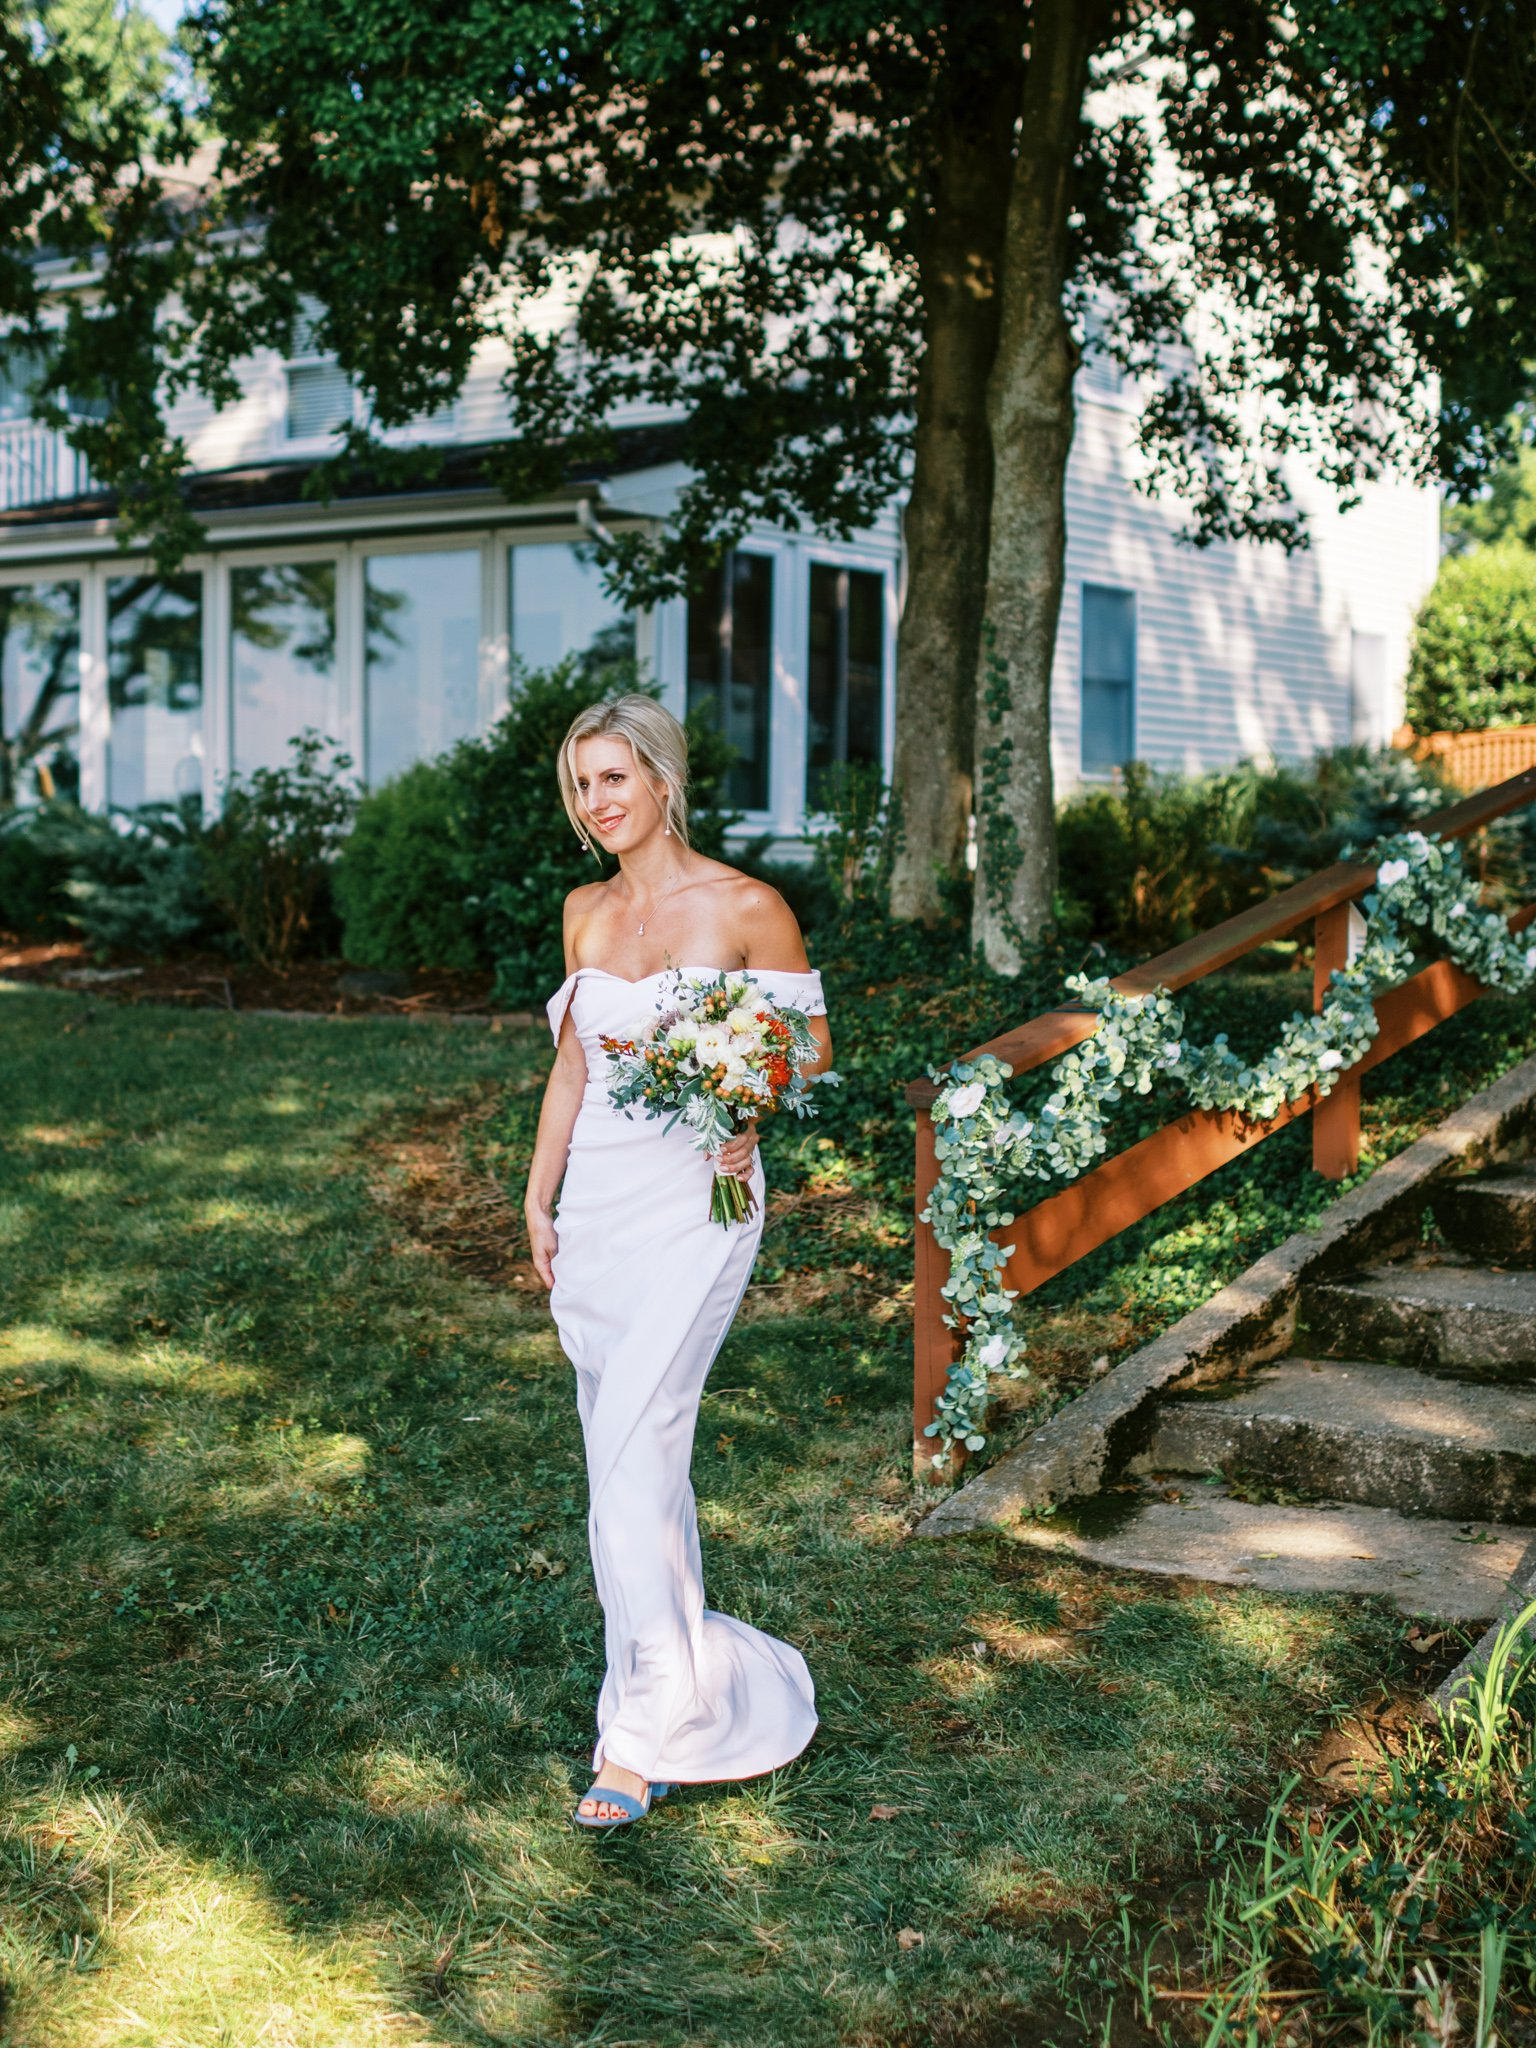 Gray_Joiner_e. losinio photography_annapolis-maryland-waterfront-elopement-126